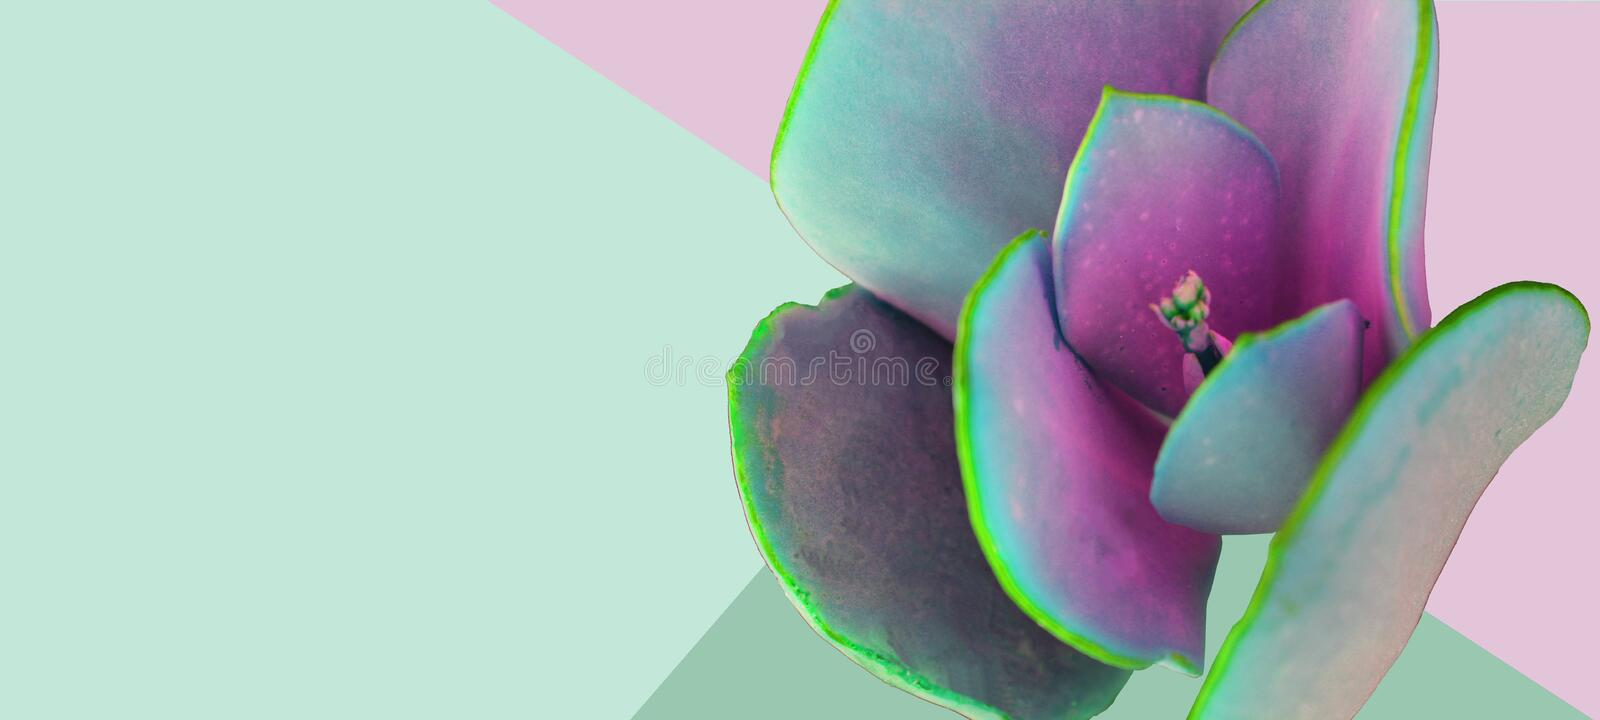 Abstract flower close-up in pastel colors. stock images